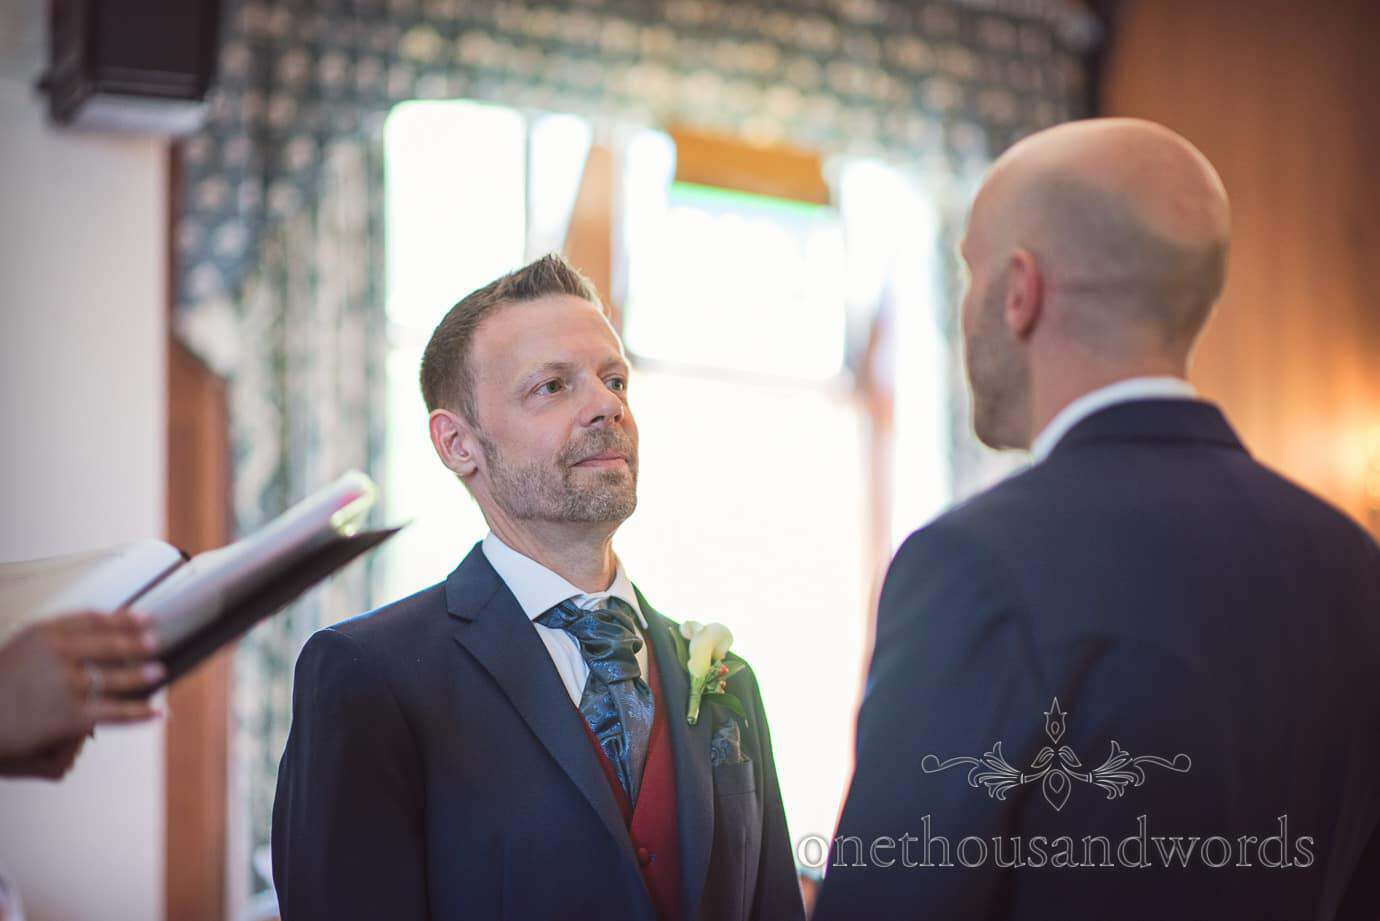 Groom looks affectionately into partners eyes during gay wedding ceremony in Dorset